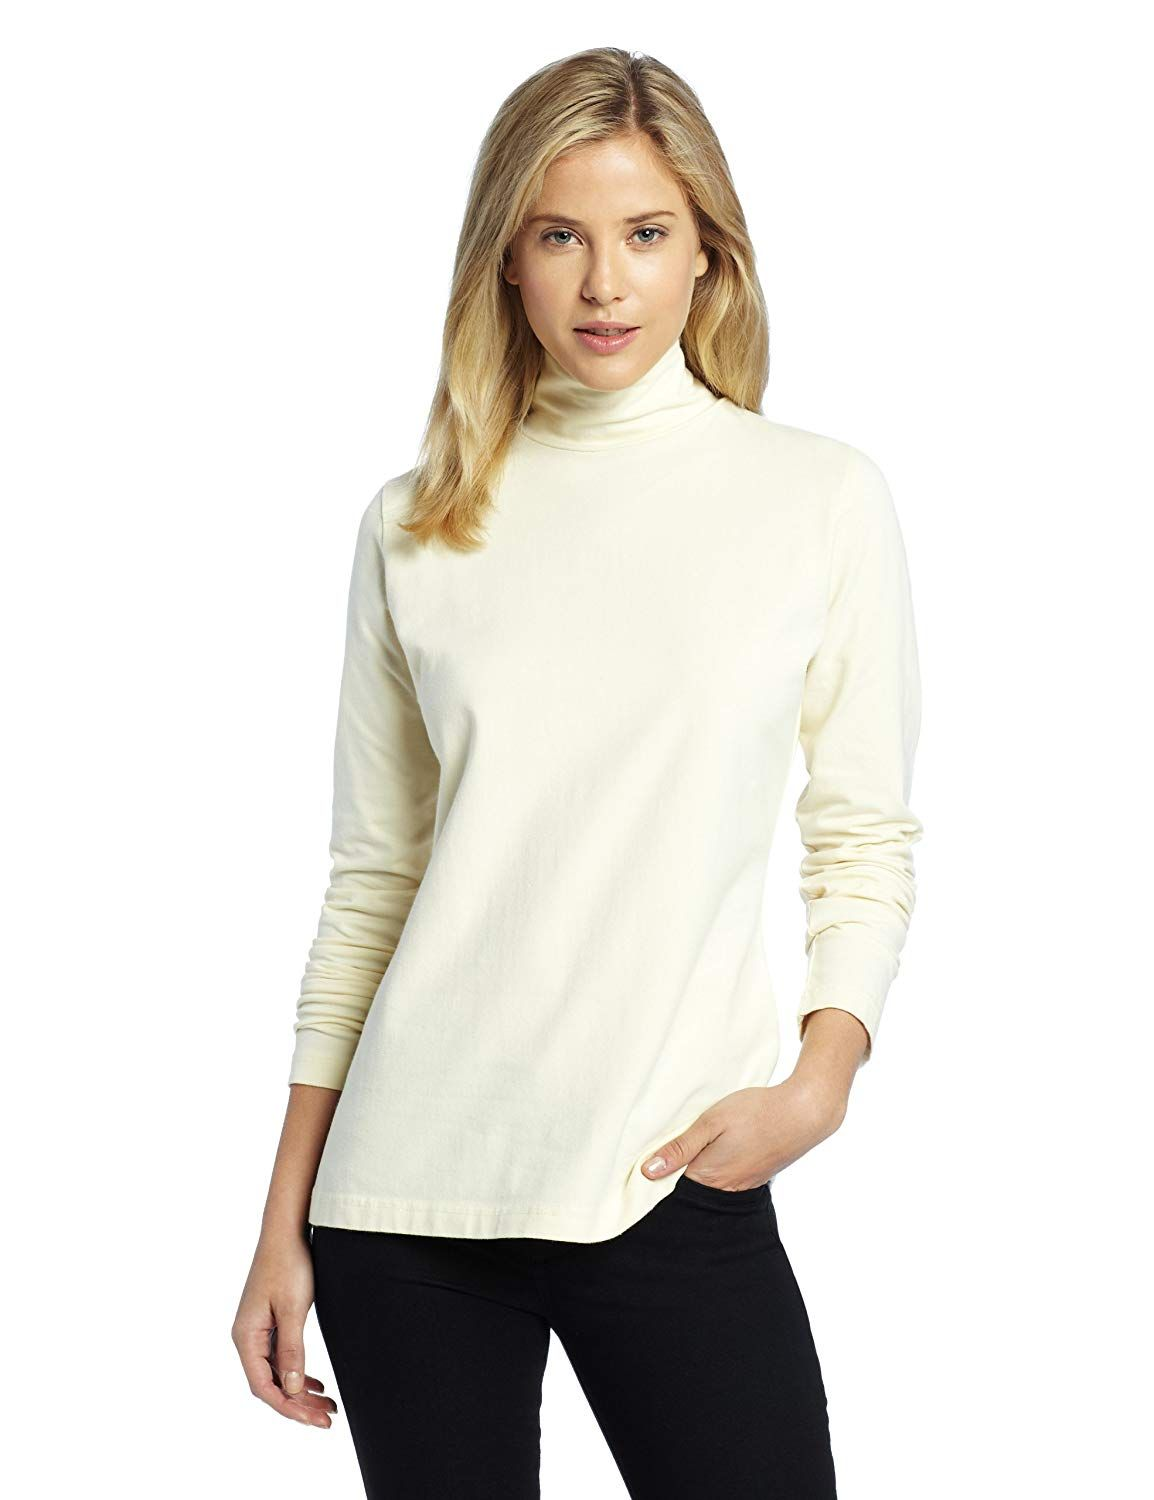 867f0277704 Woolrich 7004 ECU. Laureldale High Mock Neck Long Sleeve Shirt.   WoolrichWomens  FallFashion